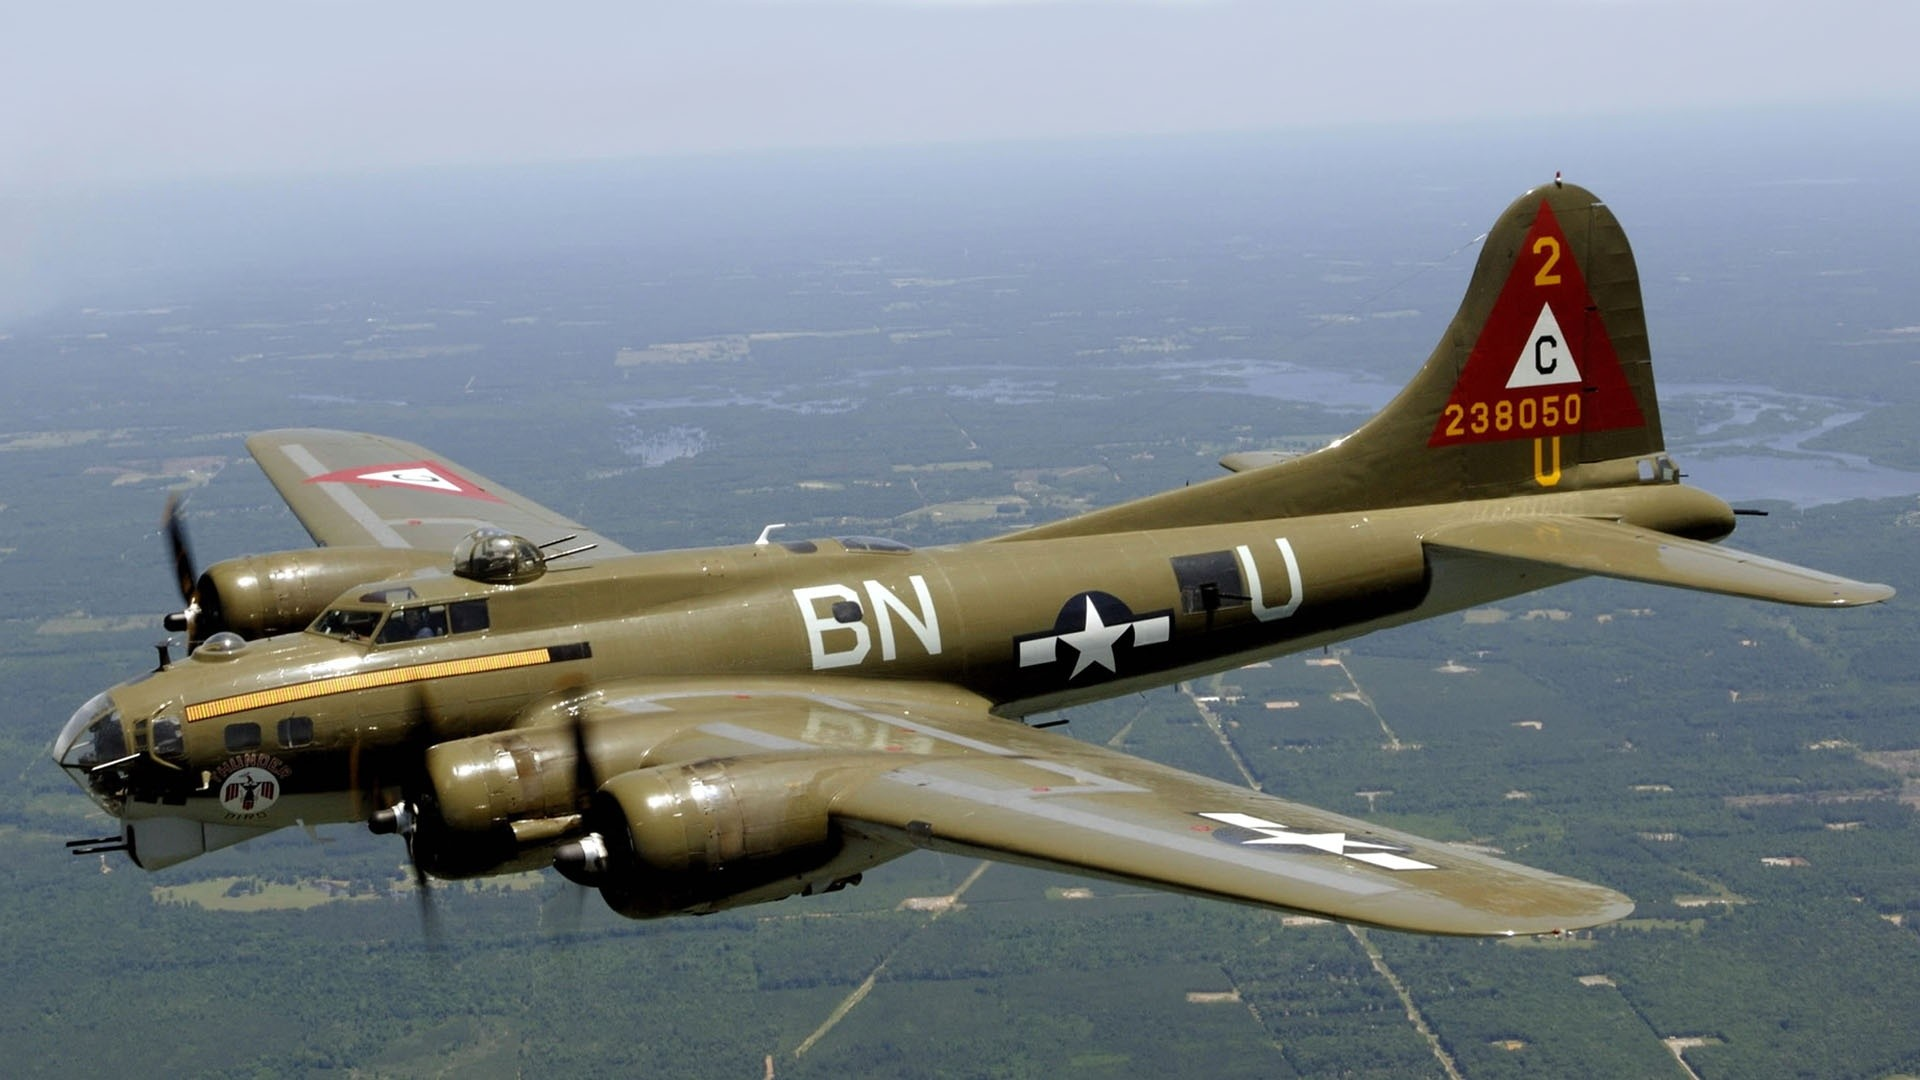 Airplanes Bomber Wallpaper 1920x1080 Airplanes Bomber B17 1920x1080